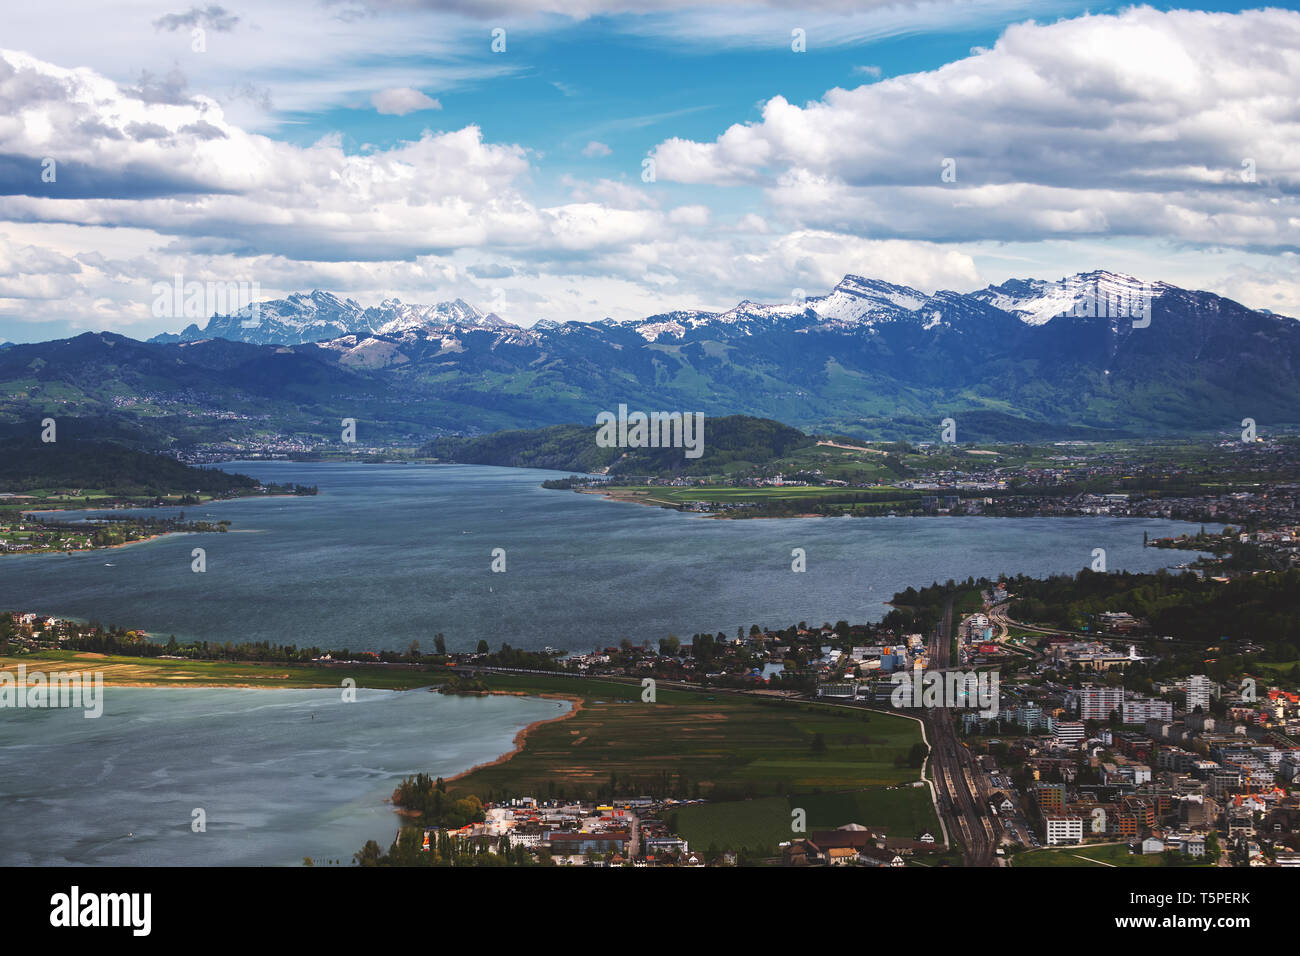 Aerial photos near to Obersee in Switzerland. - Stock Image